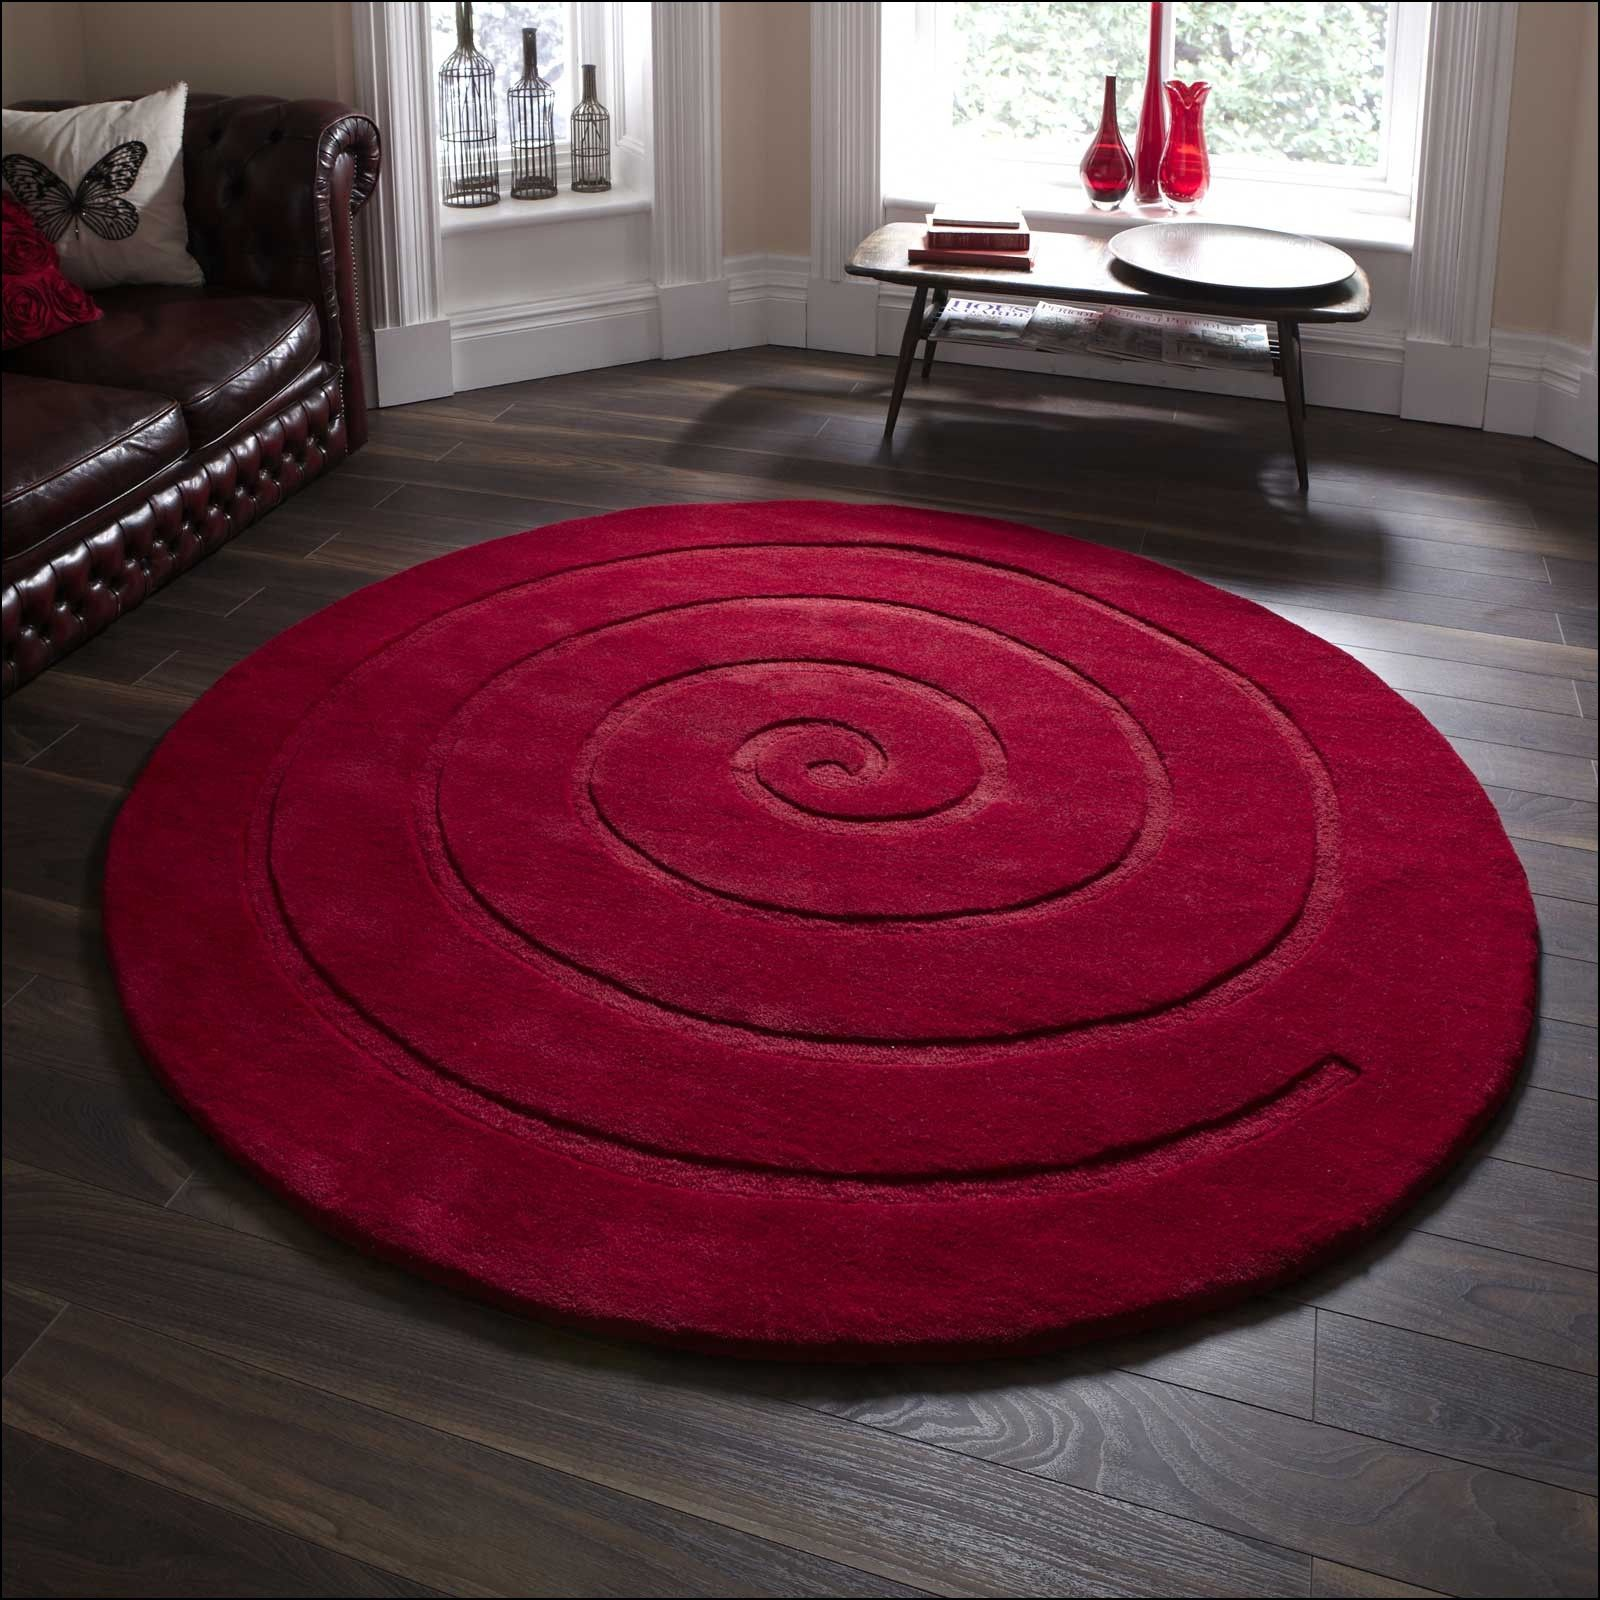 Large Round Rugs For Sale Circular Rugs Contemporary Wool Rugs